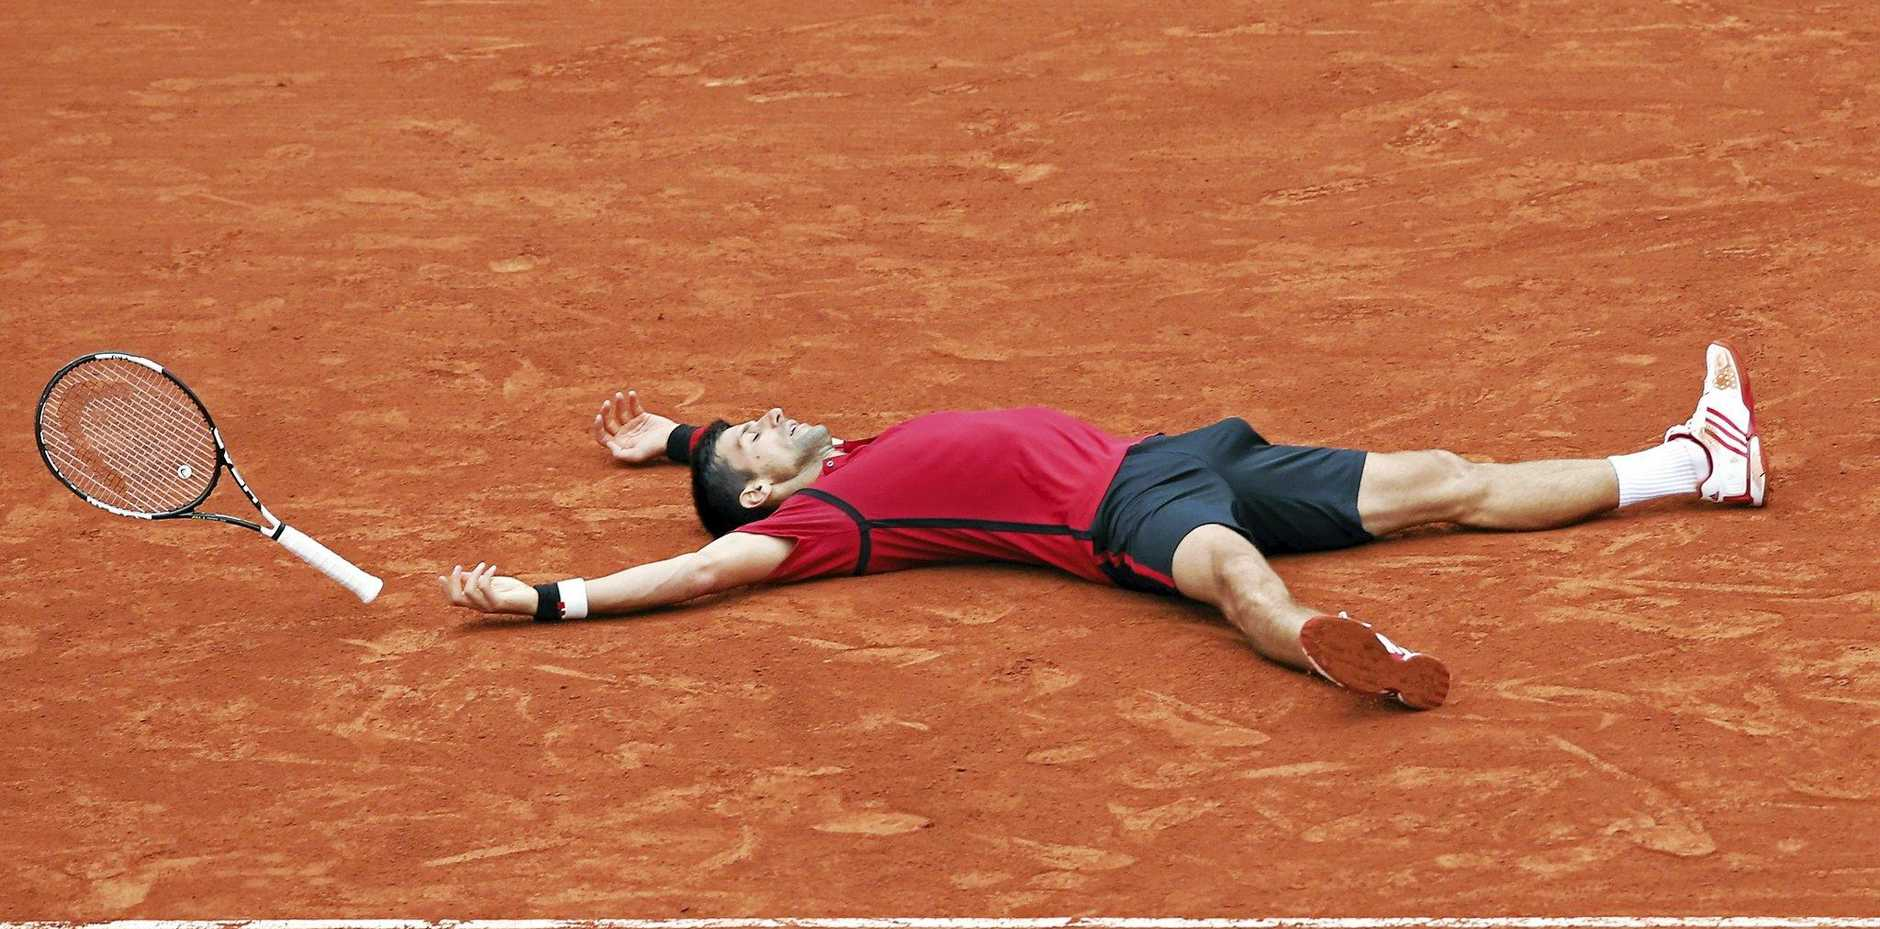 CLAY FEAT: A relieved Novak Djokovic tries to take in his win in the French Open.